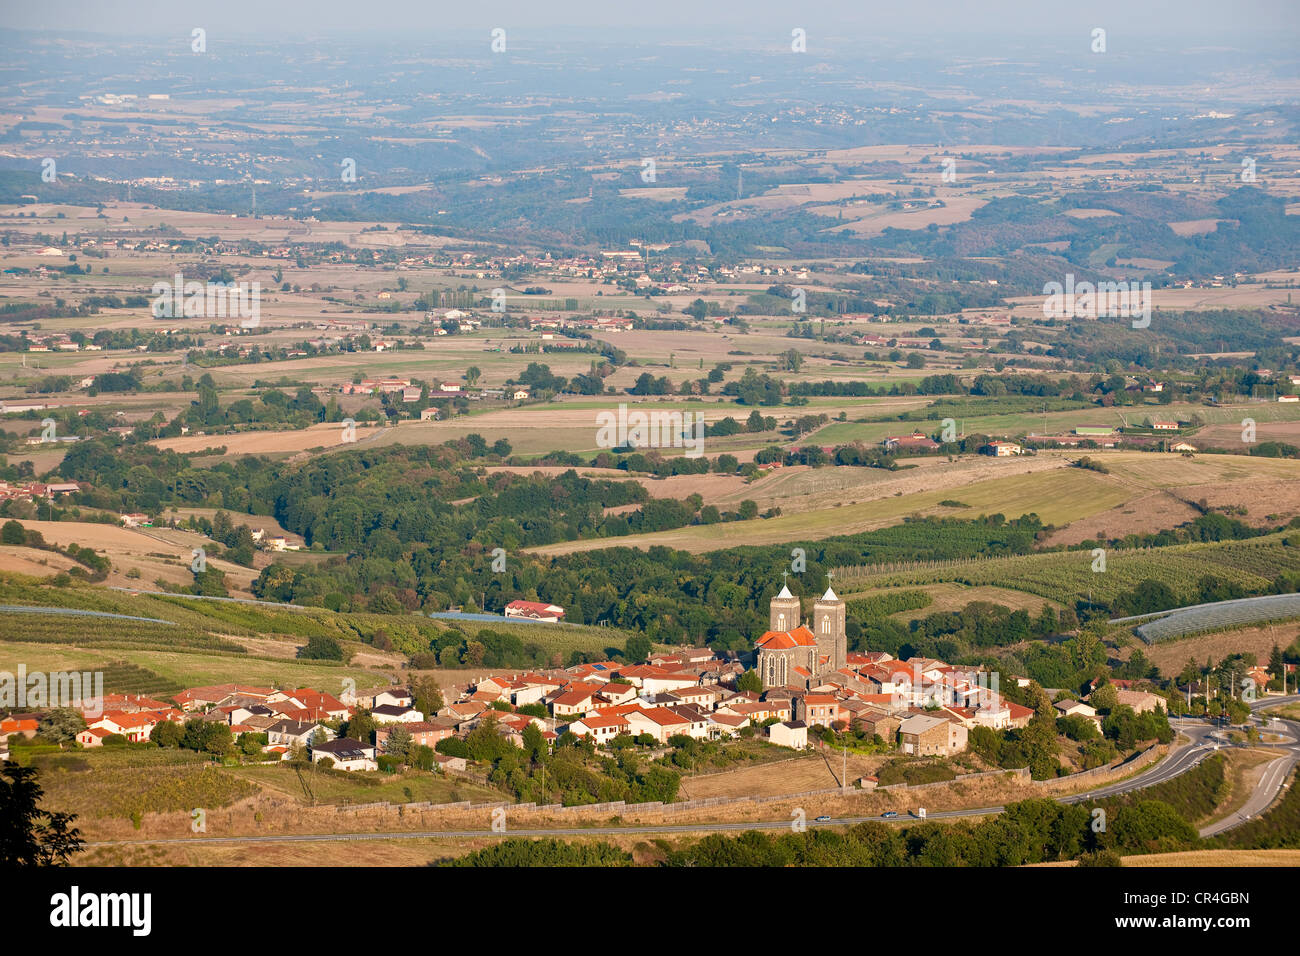 France, Rhone, Les Monts du Lyonnais, viewpoint from the village of Riverie - Stock Image